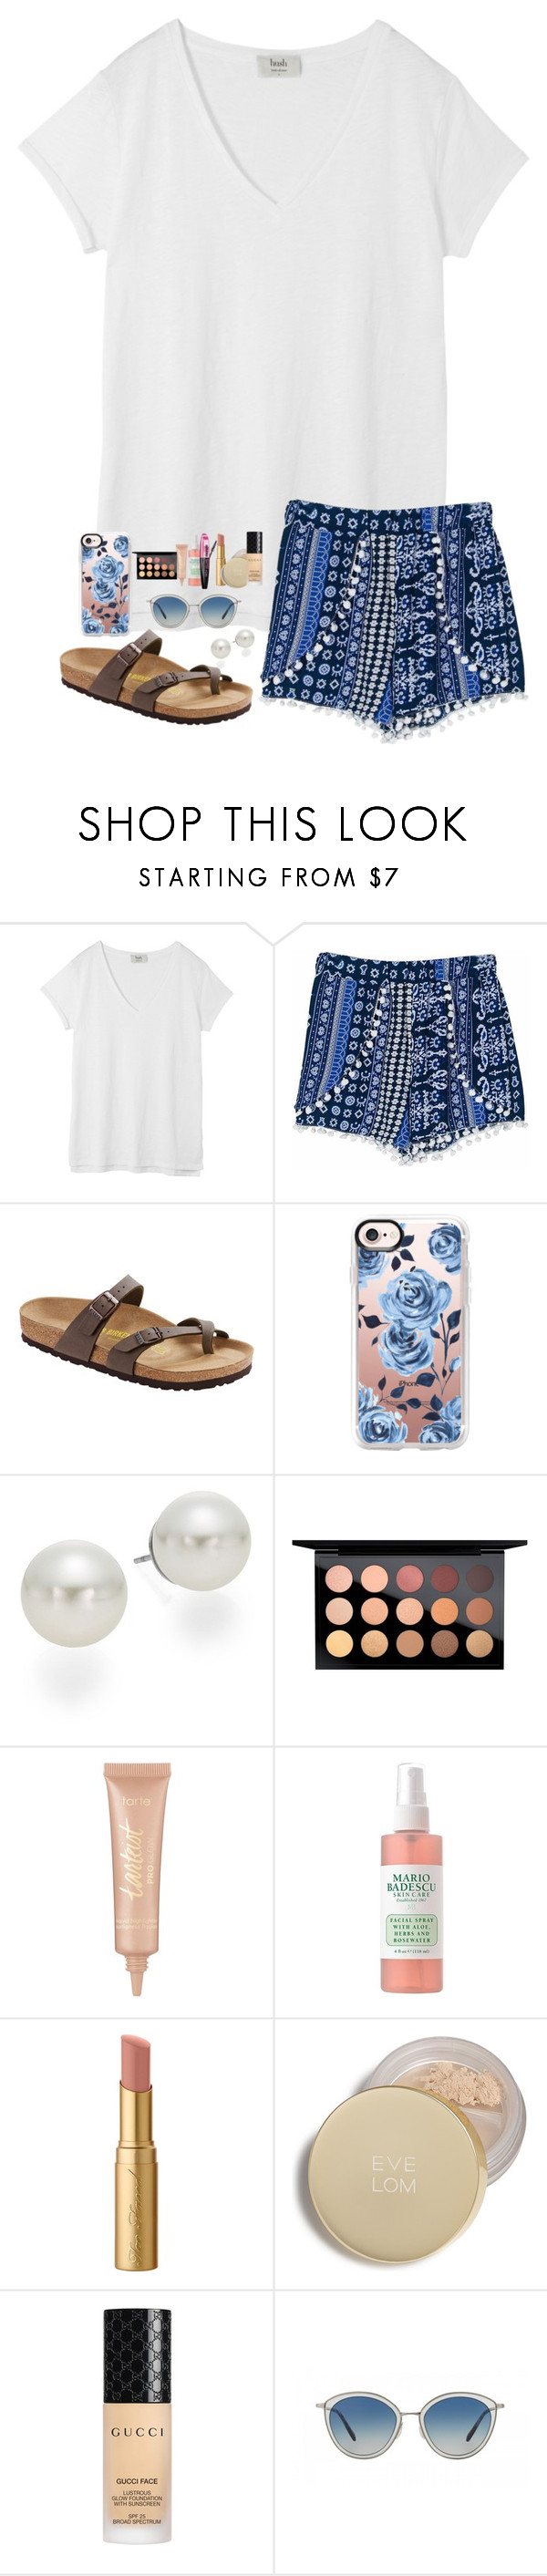 """spring break is officially here!!!!"" by kellycarrick ❤ liked on Polyvore featuring Hush, Birkenstock, Casetify, AK Anne Klein, MAC Cosmetics, tarte, L'Oréal Paris, Too Faced Cosmetics, Eve Lom and Gucci"